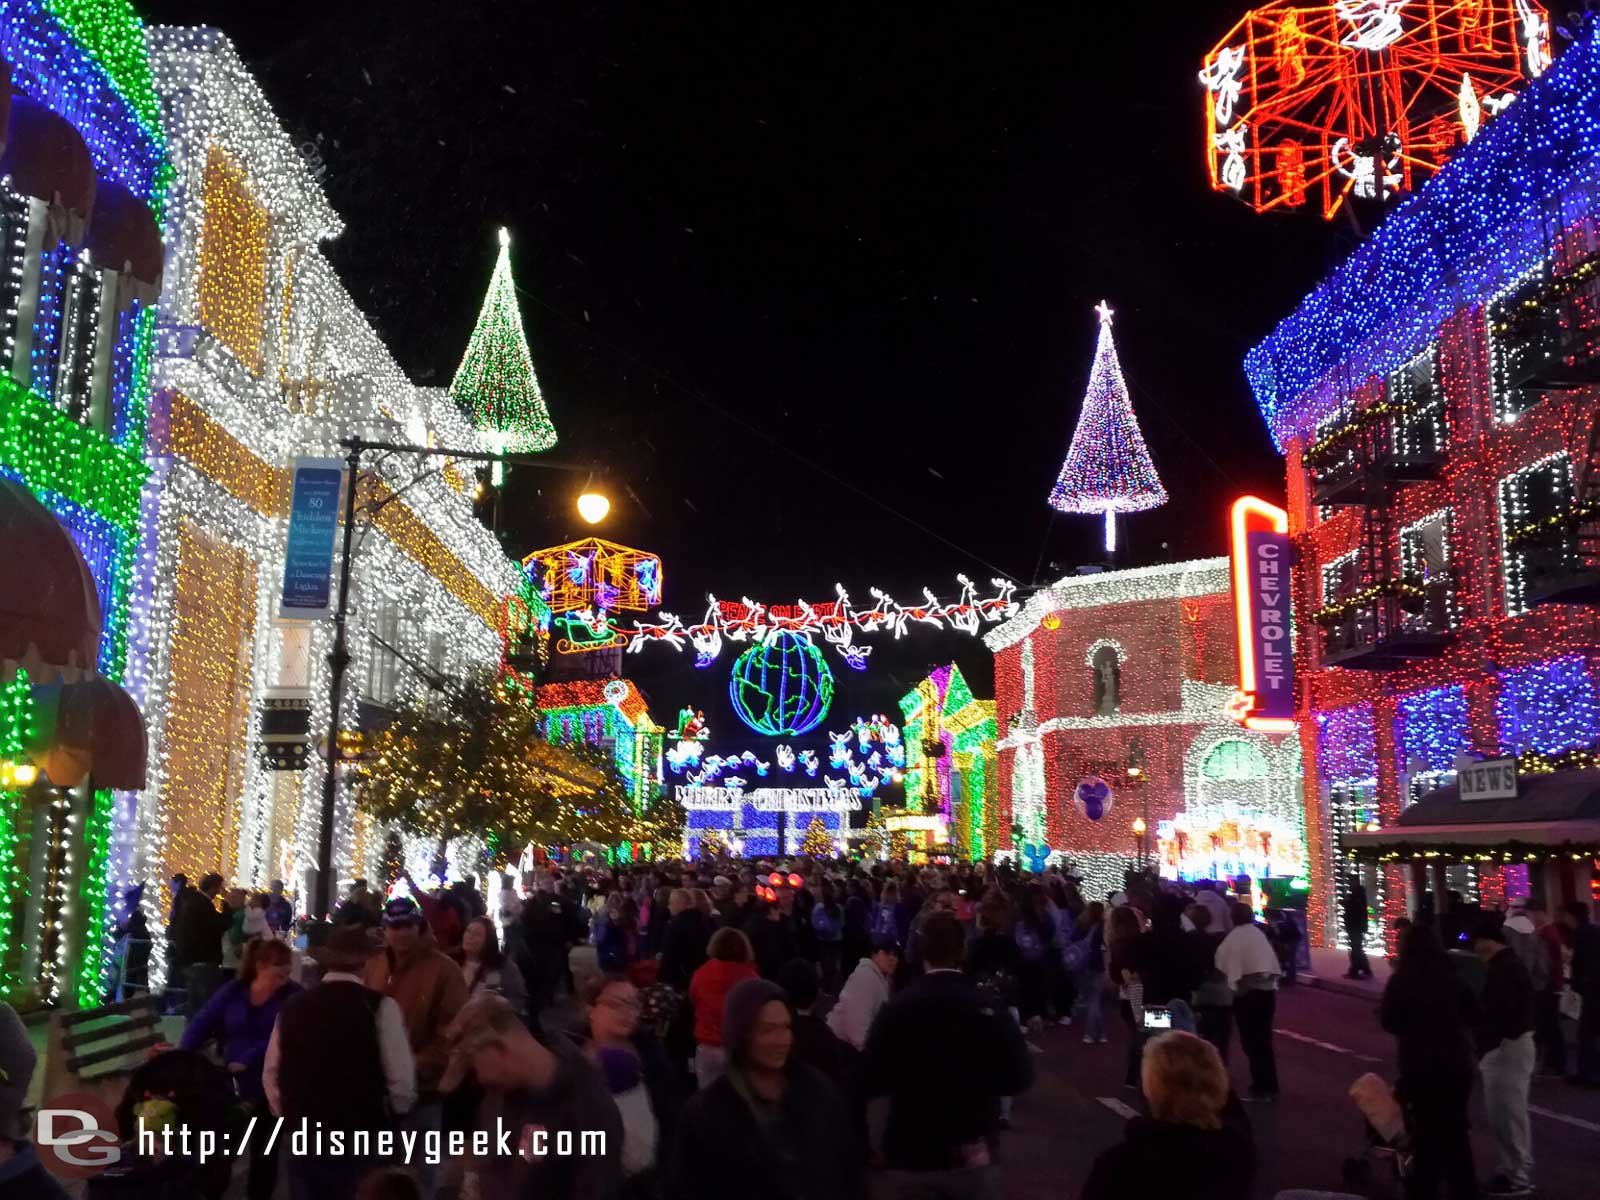 One last Osborne Family Spectacle of Dancing Lights picture – Disney's Hollywood Studios